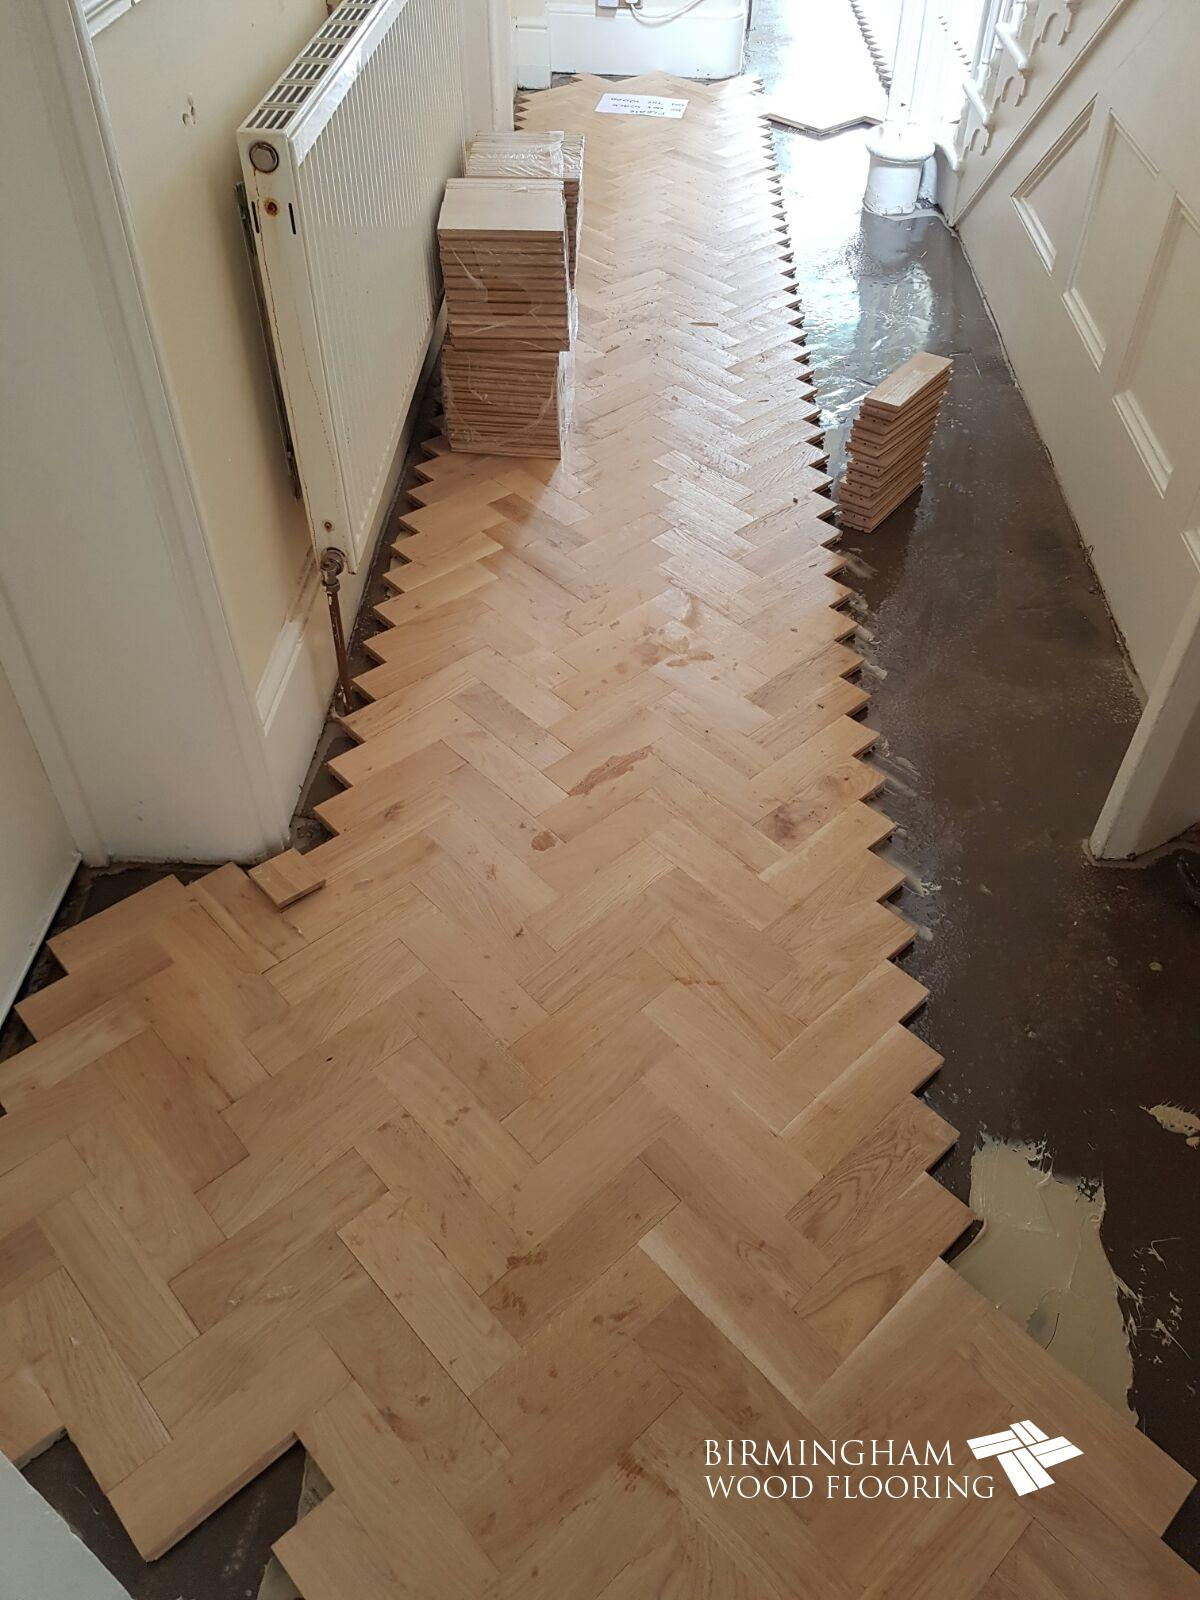 Installation-of-parquet-blocks-either-side-of-header-line-Edgbaston-Birmingham-3